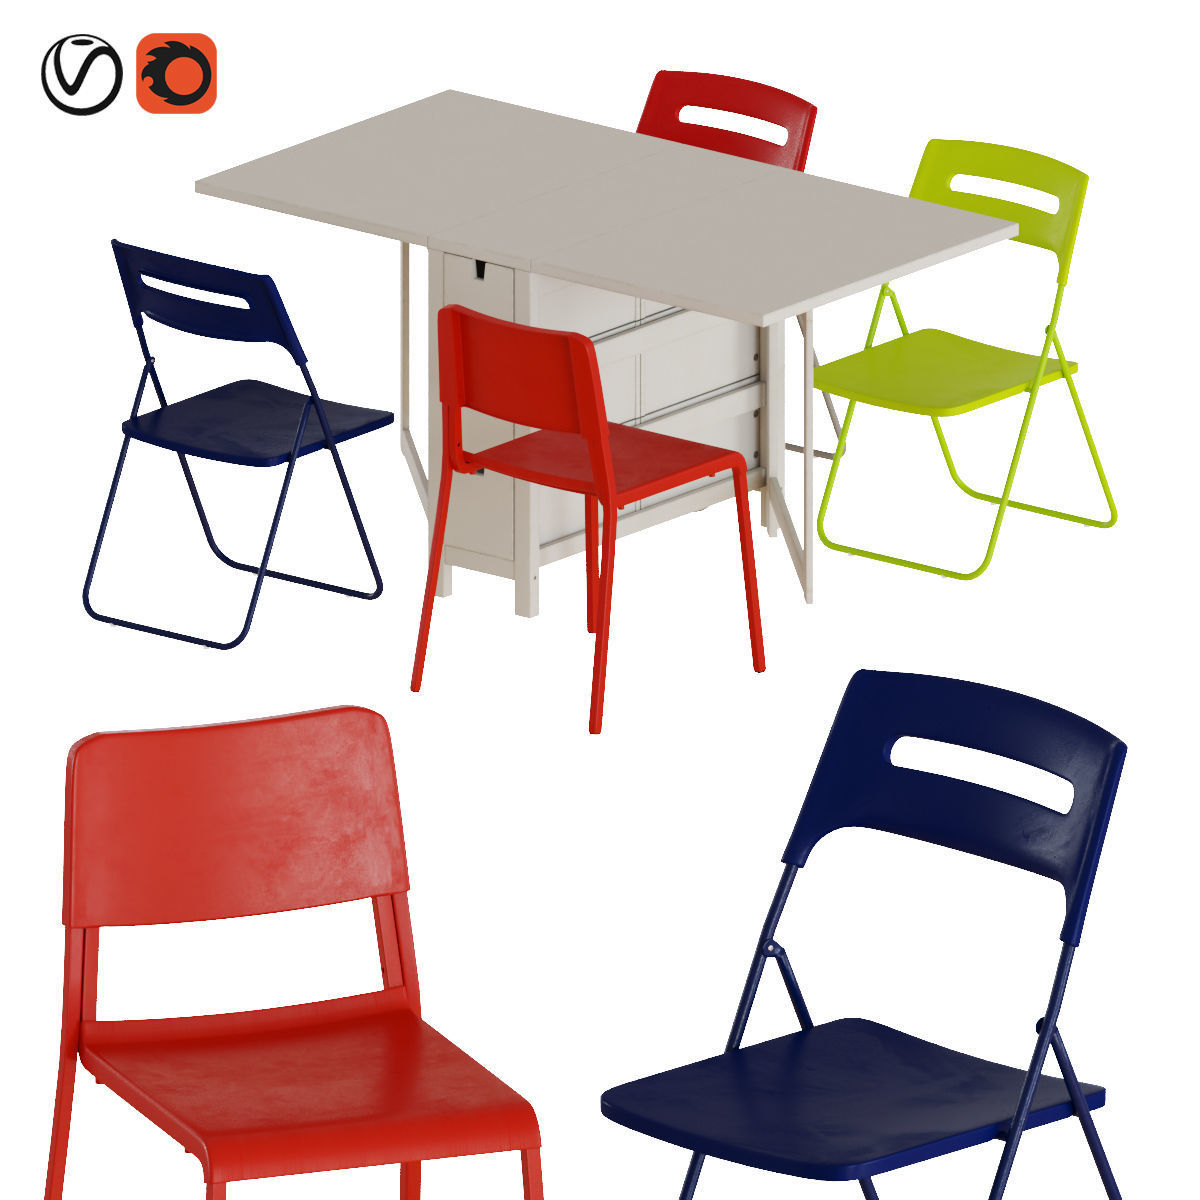 Norden Gateleg Table And Chairs 2 3d Cgtrader